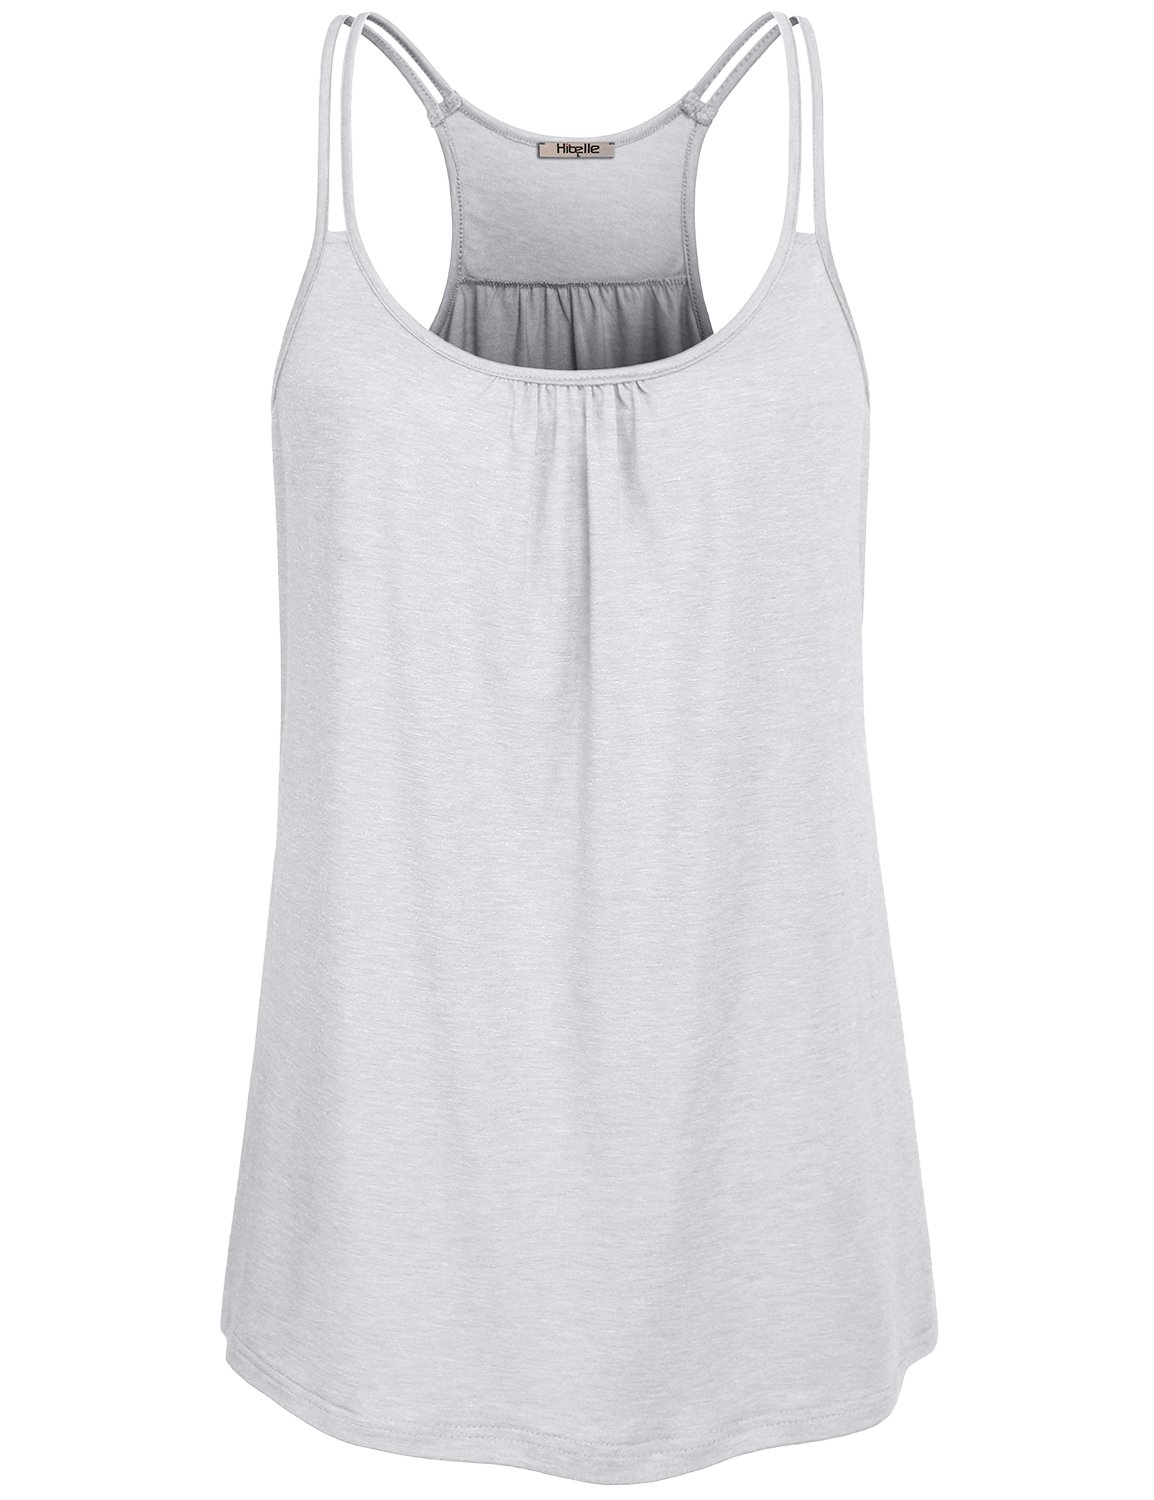 Hibelle Moisture Wicking Shirts Women, Ladies Sleeveless Summer Casual Yoga Sports Tank Tops Scoop Neck Flowy Dressy Funny Front Ruched Tunic Racerback Loose Fit Drape Top White Small